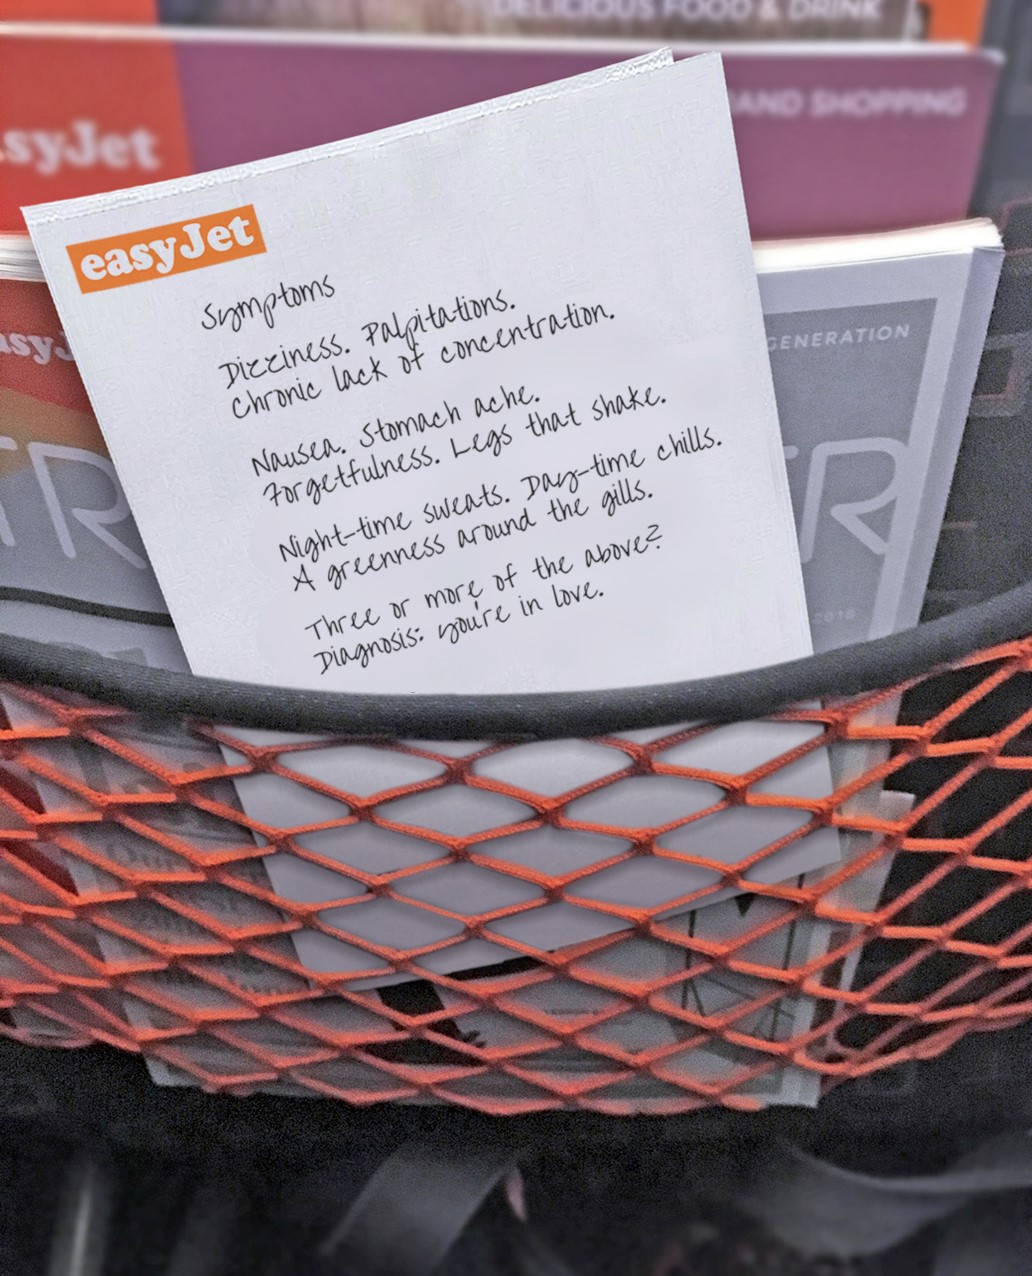 The competition encourages passengers to pen heartfelt lines on the sick bags provided.